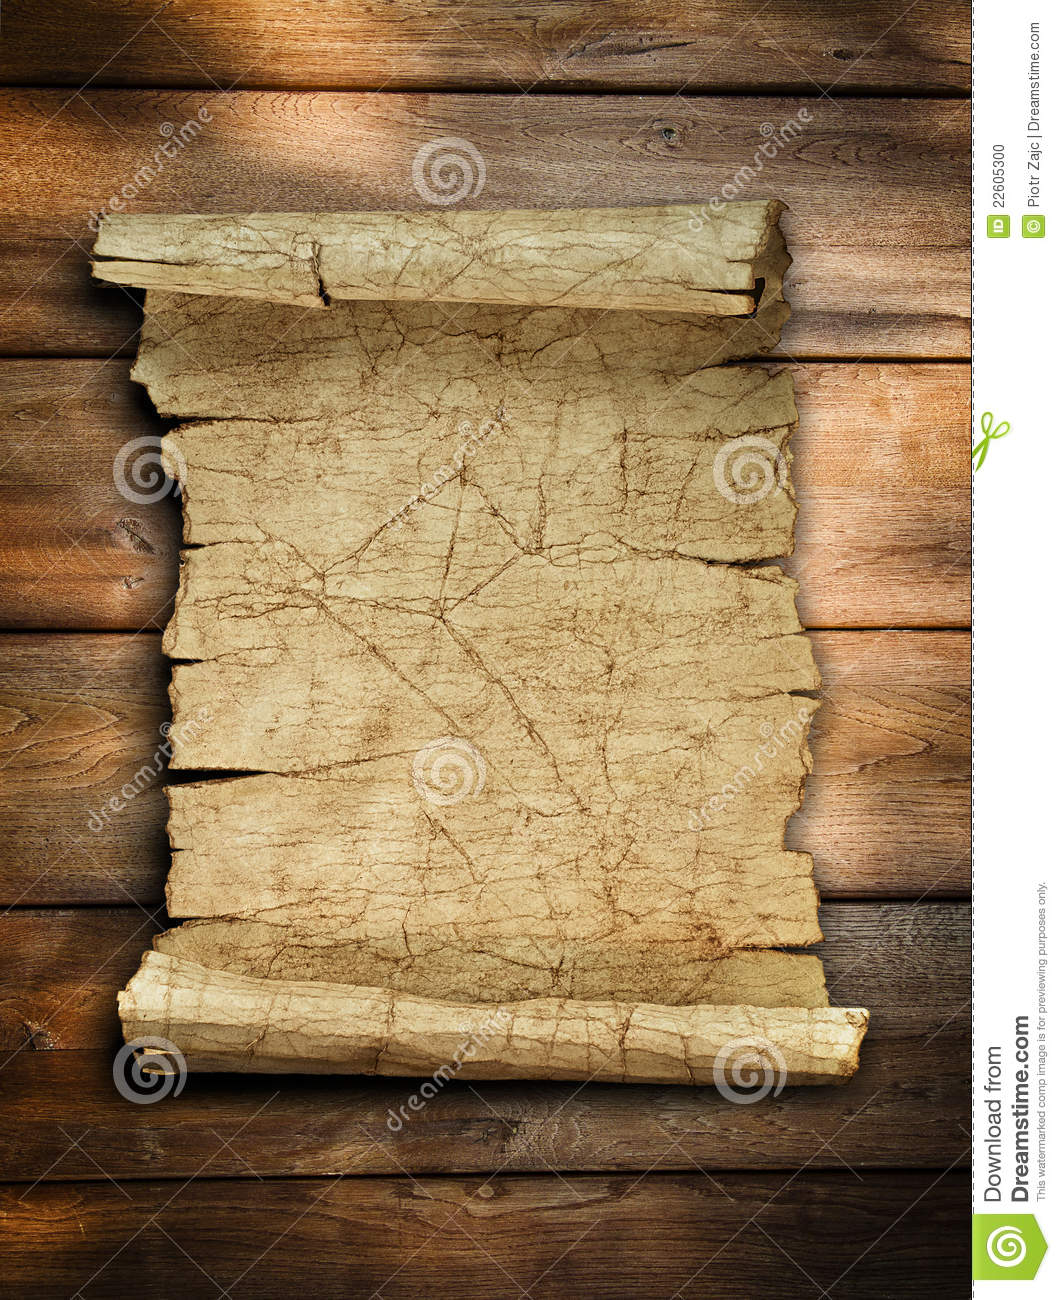 Antique Scroll Paper: Vintage Old Paper Scroll At Wood Stock Photo